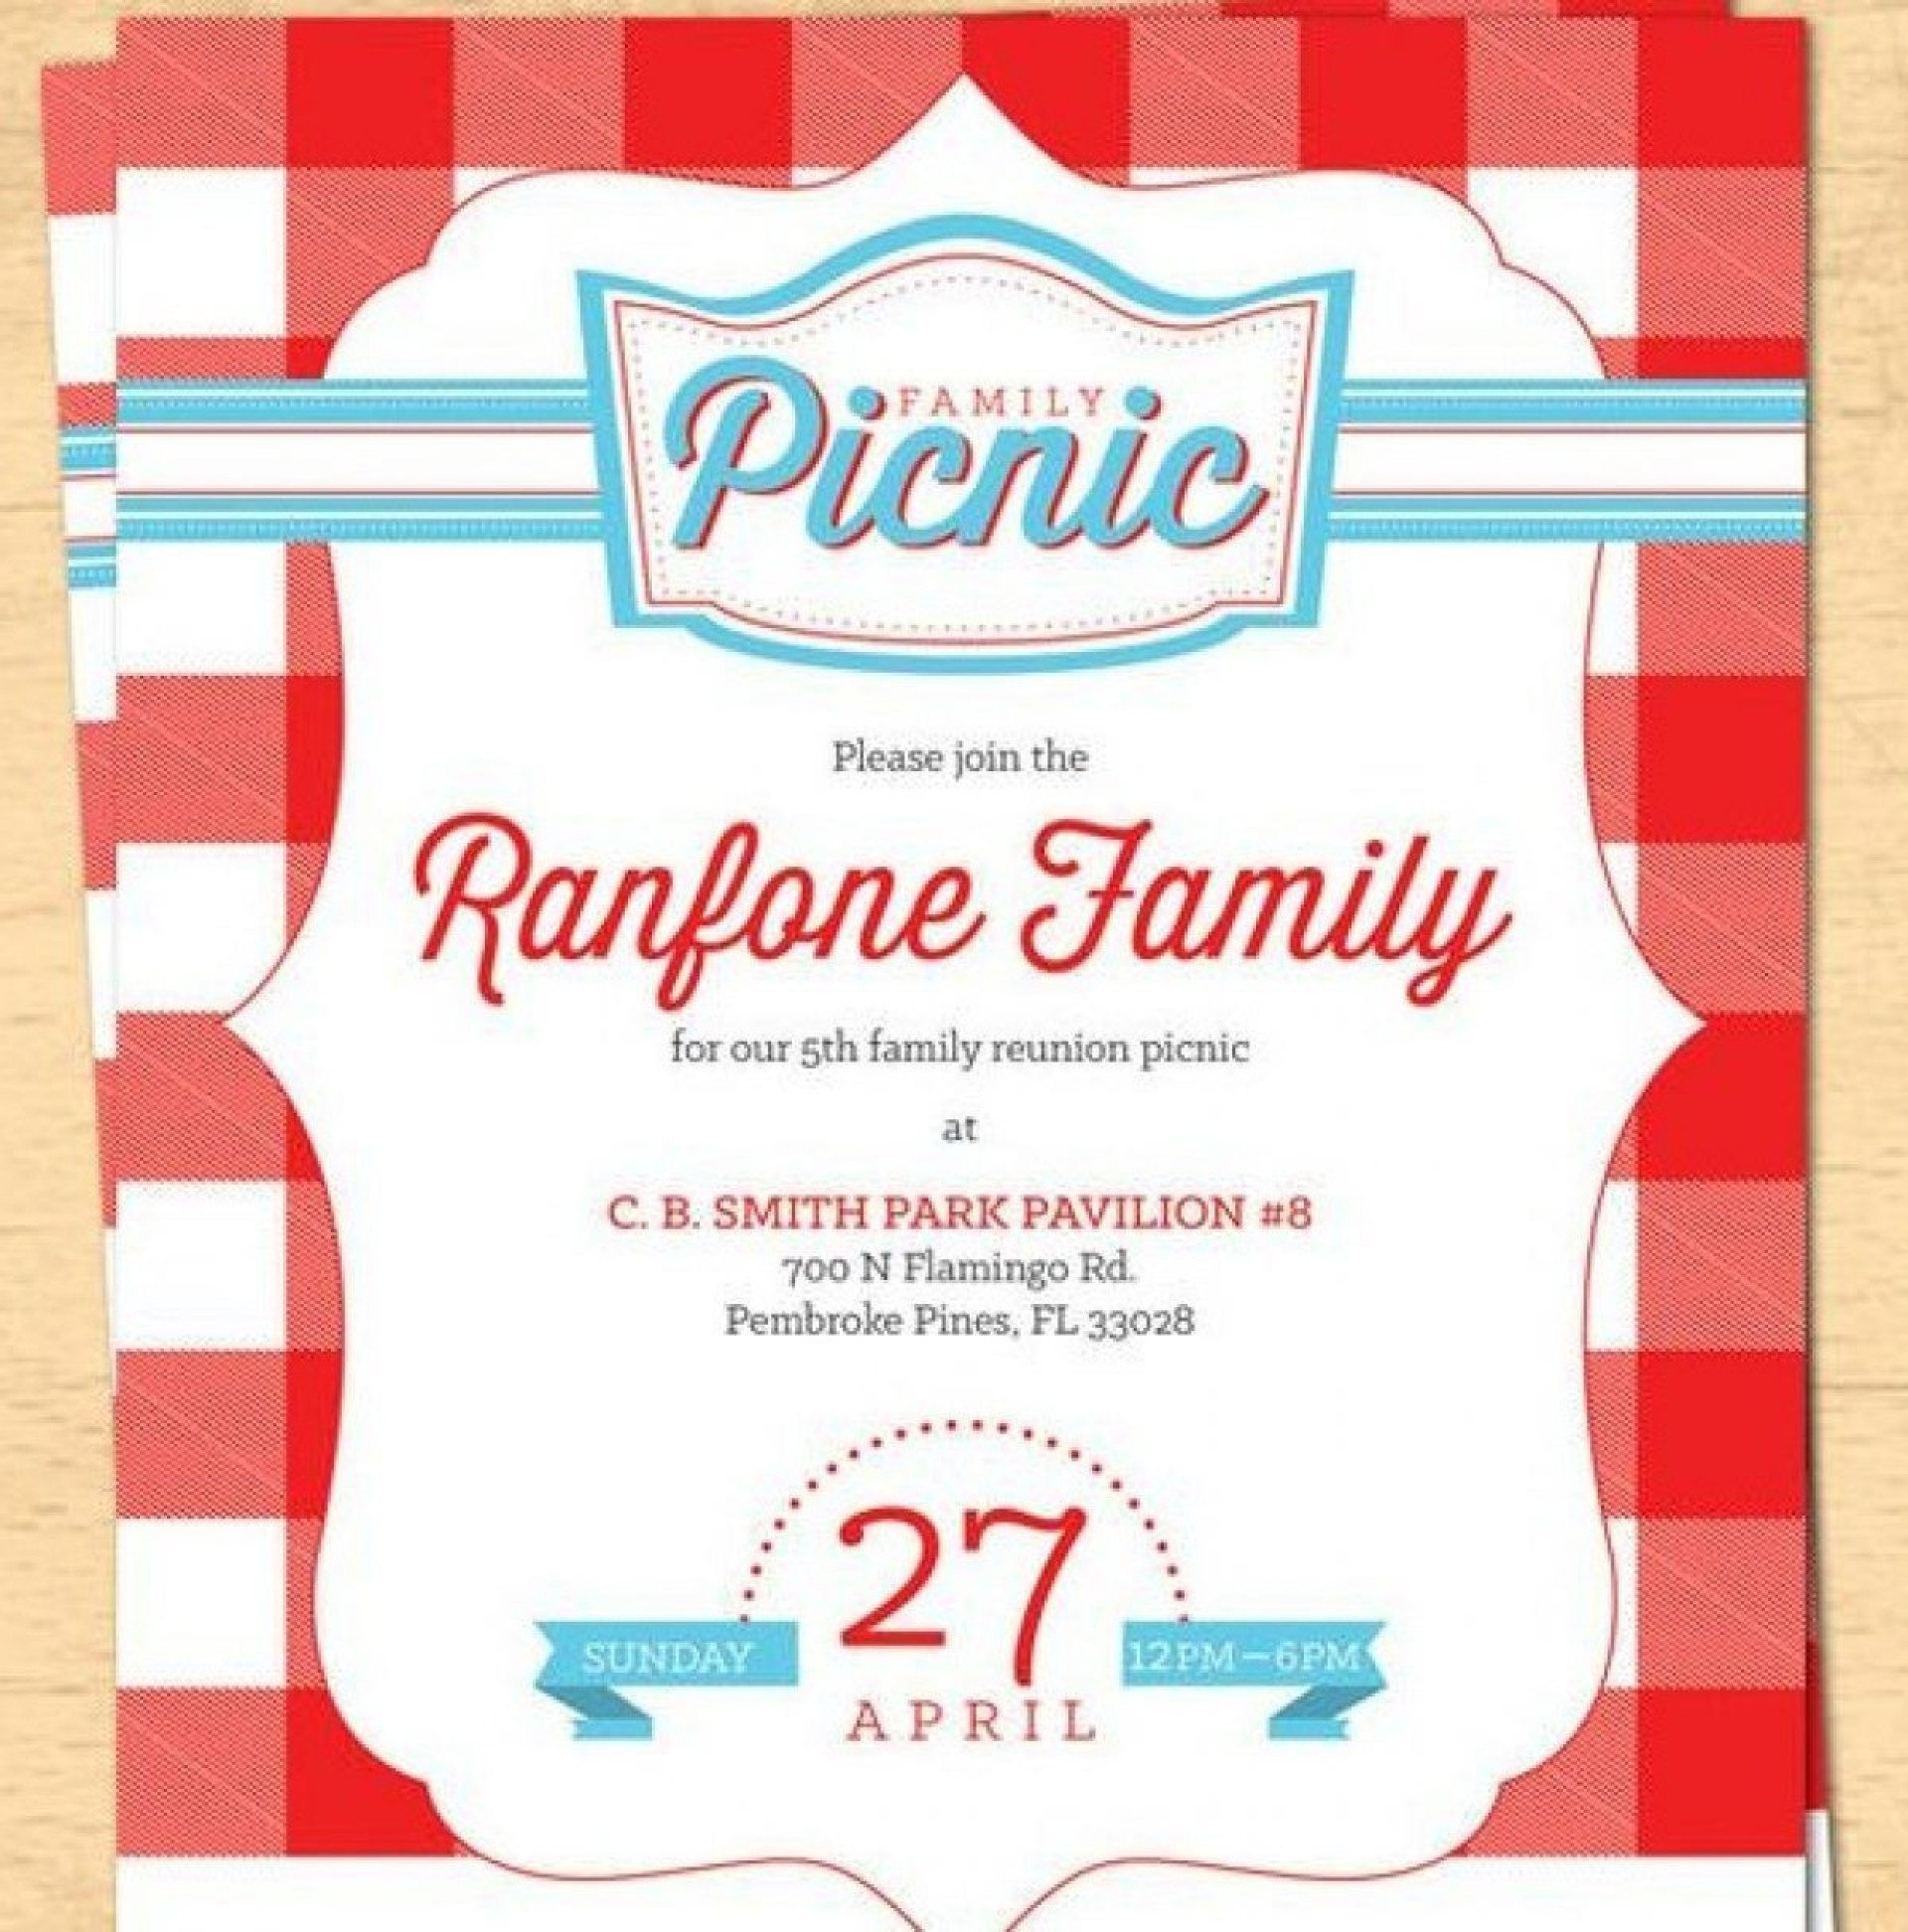 004 Stupendou Free Downloadable Family Reunion Flyer Template Highest Quality  Templates1920